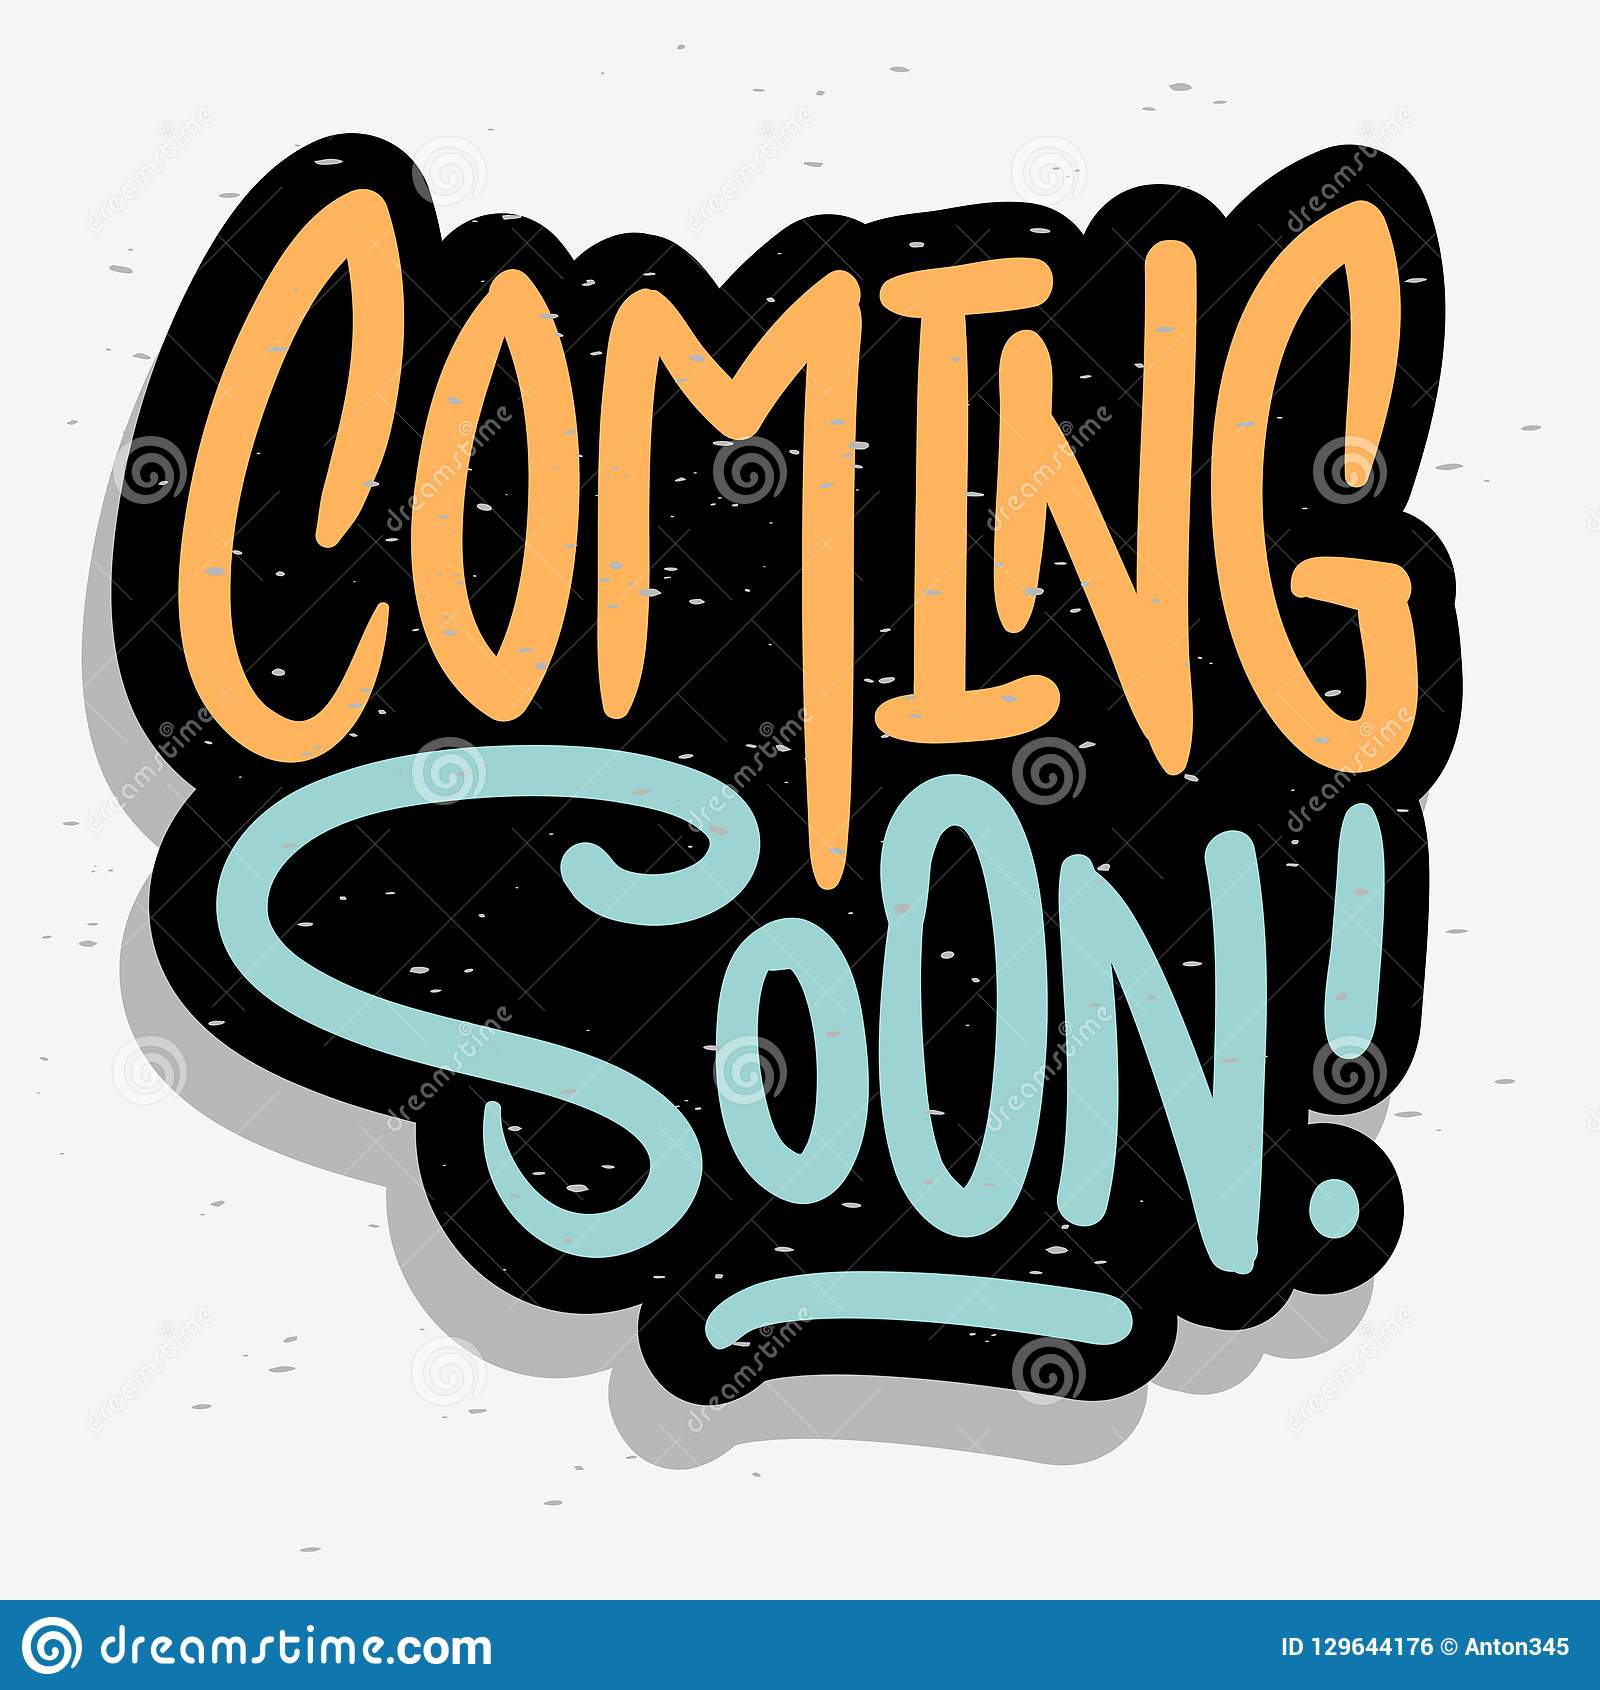 Coming Soon Text Inscription Hand Drawn Lettering Calligraphy Type Design Vector Graphic Stock Vector Illustration Of Message Inscription 129644176